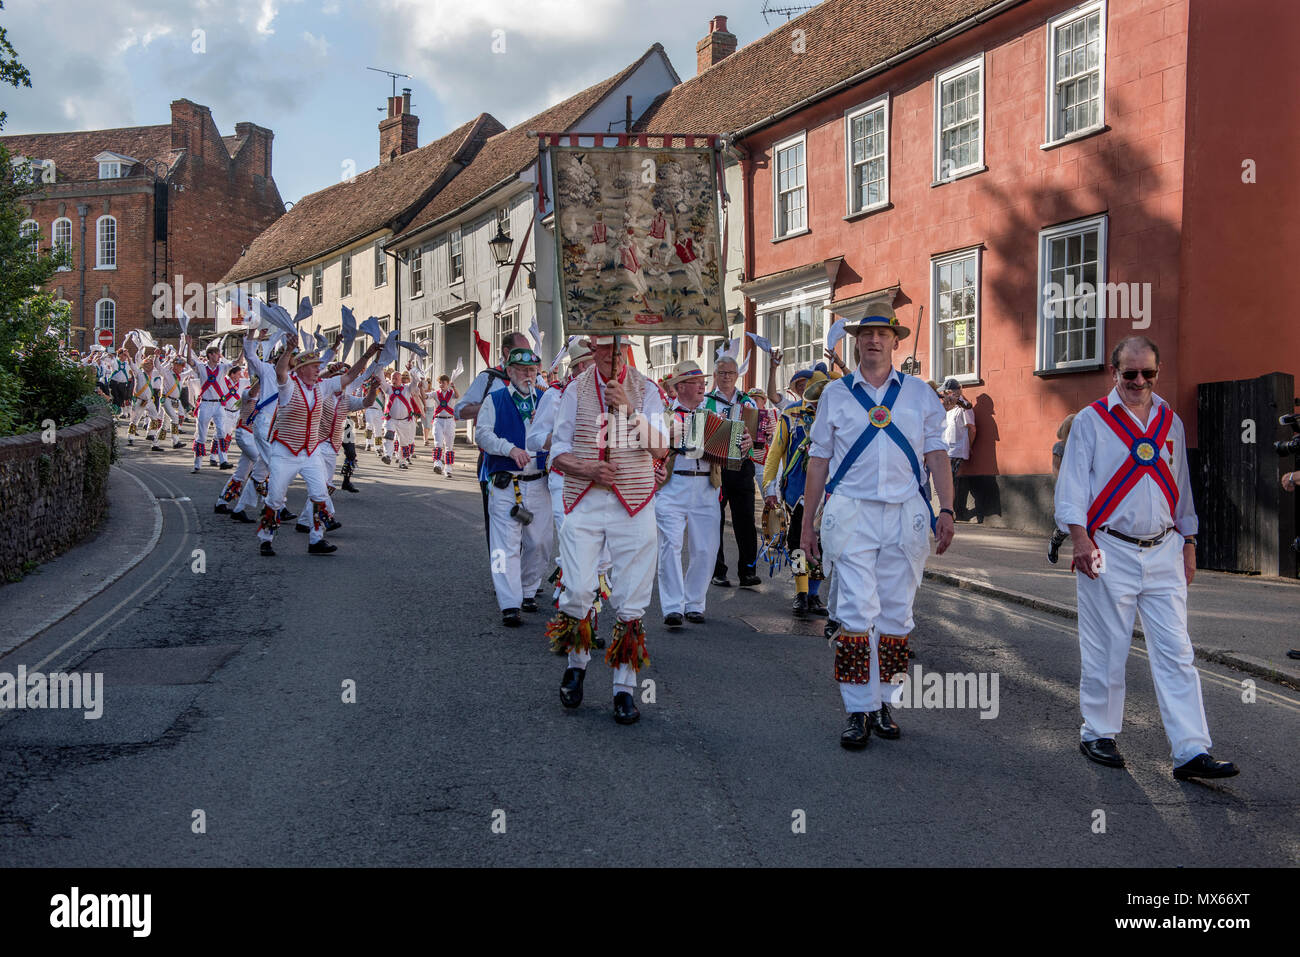 Thaxted Morris Weekend, Thaxted Essex England UK. 2-3 June 2018 The 85th Meeting of the Member Clubs of the Morris Ring hosted by Thaxted Morris Men (who wear red and white stripes) who lead the Saturday evening procession to Town Street in Thaxted after a busy day of dancing in a dozen local pubs in surrounding villages in North West Essex. Credit: BRIAN HARRIS/Alamy Live News - Stock Image